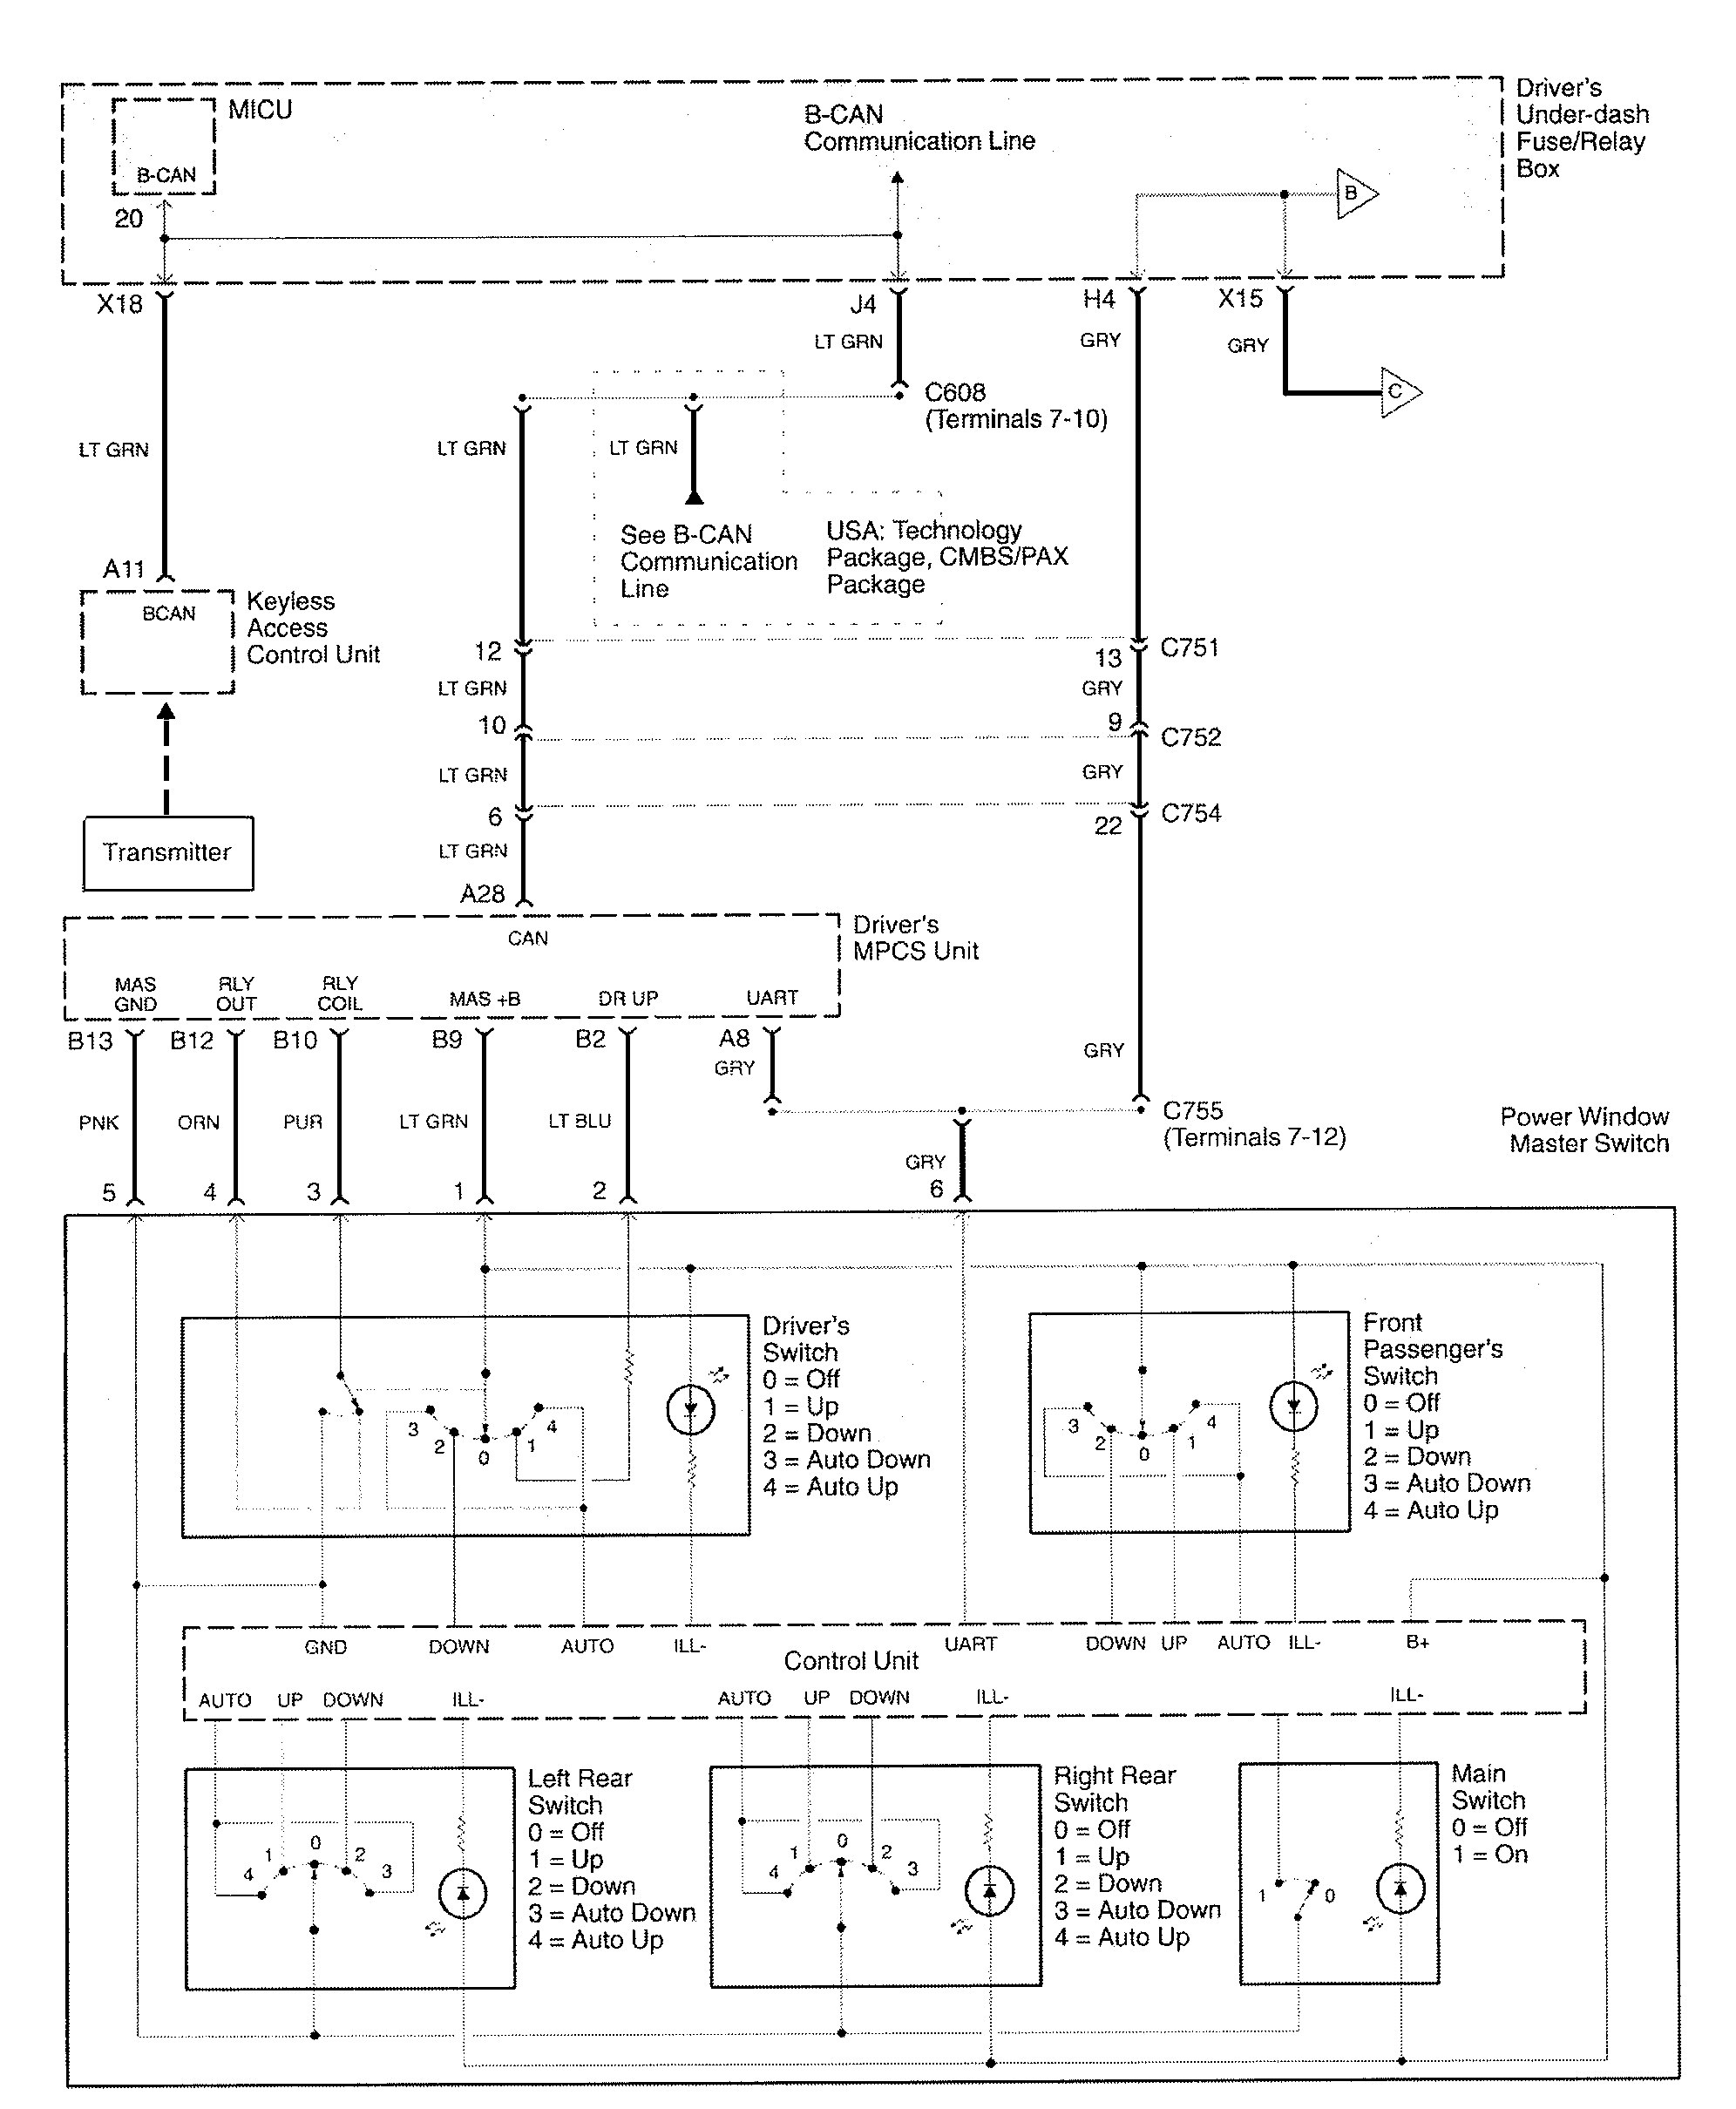 2010 Mazda 6 Wiring Diagram Another Blog About Wiring Diagram \u2022 Acura  TSX Window Wiring Diagram Mazda 6 Window Wiring Diagram